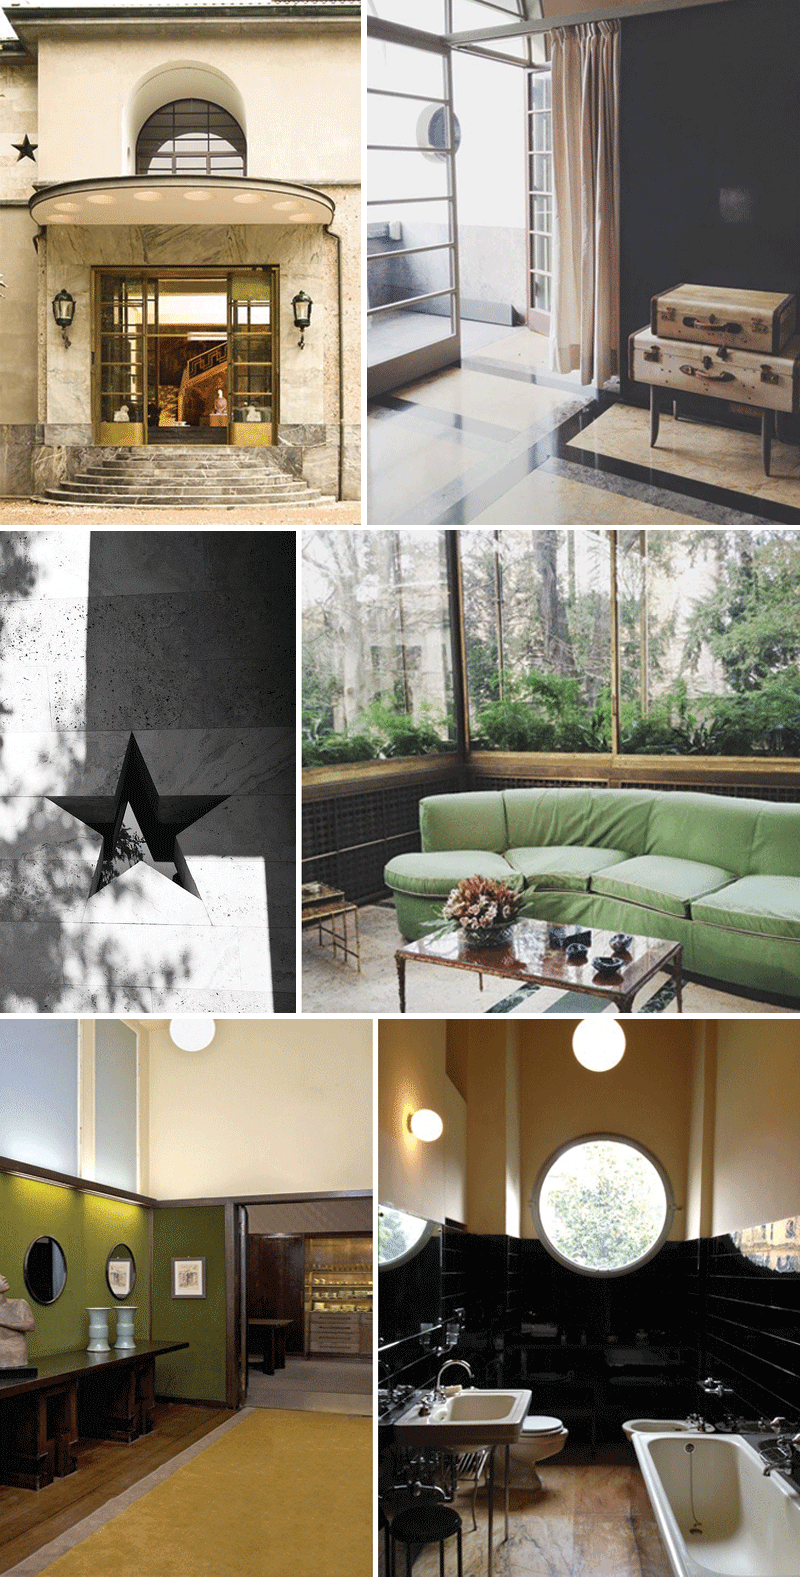 studio & blog | interior design zurich | innenarchitektur zürich | design | styling | residential design | hospitaliy design